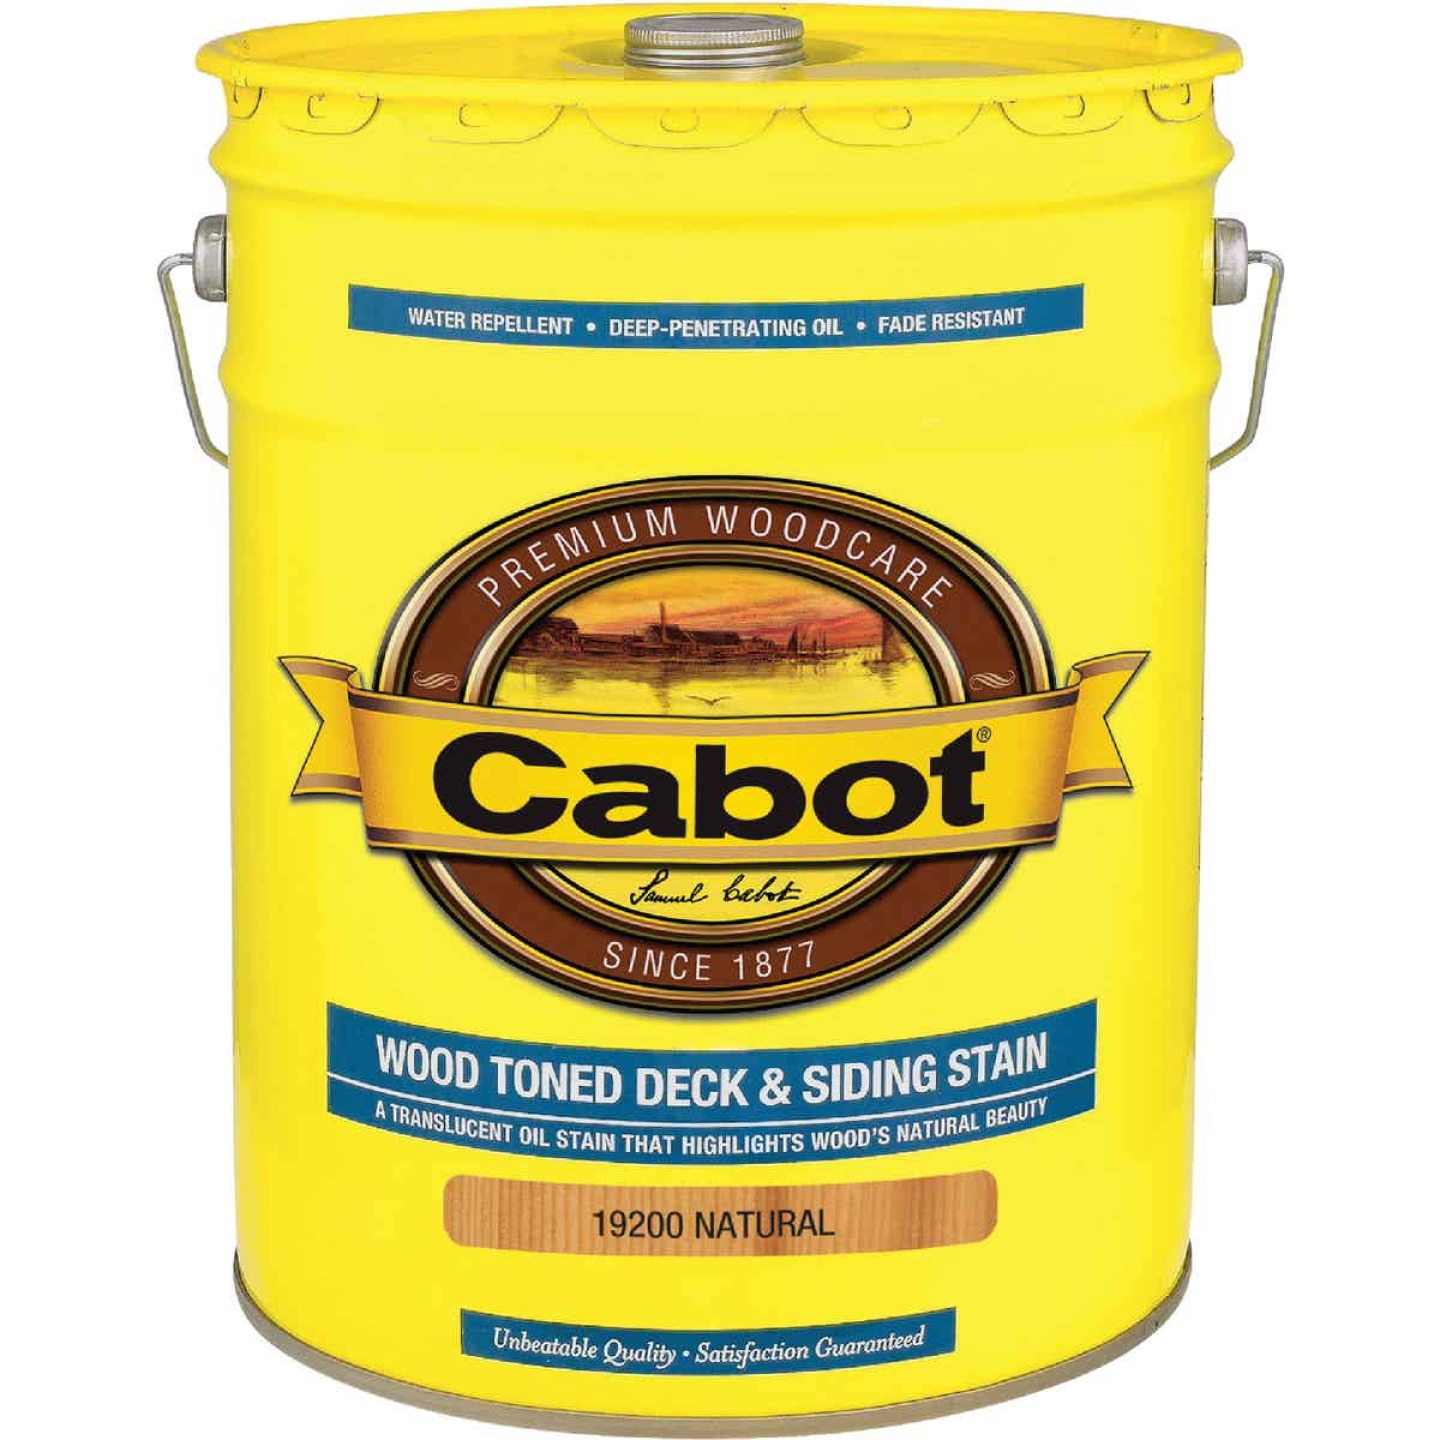 Cabot VOC Wood Toned Deck & Siding Exterior Stain, Natural, 5 Gal. Image 1